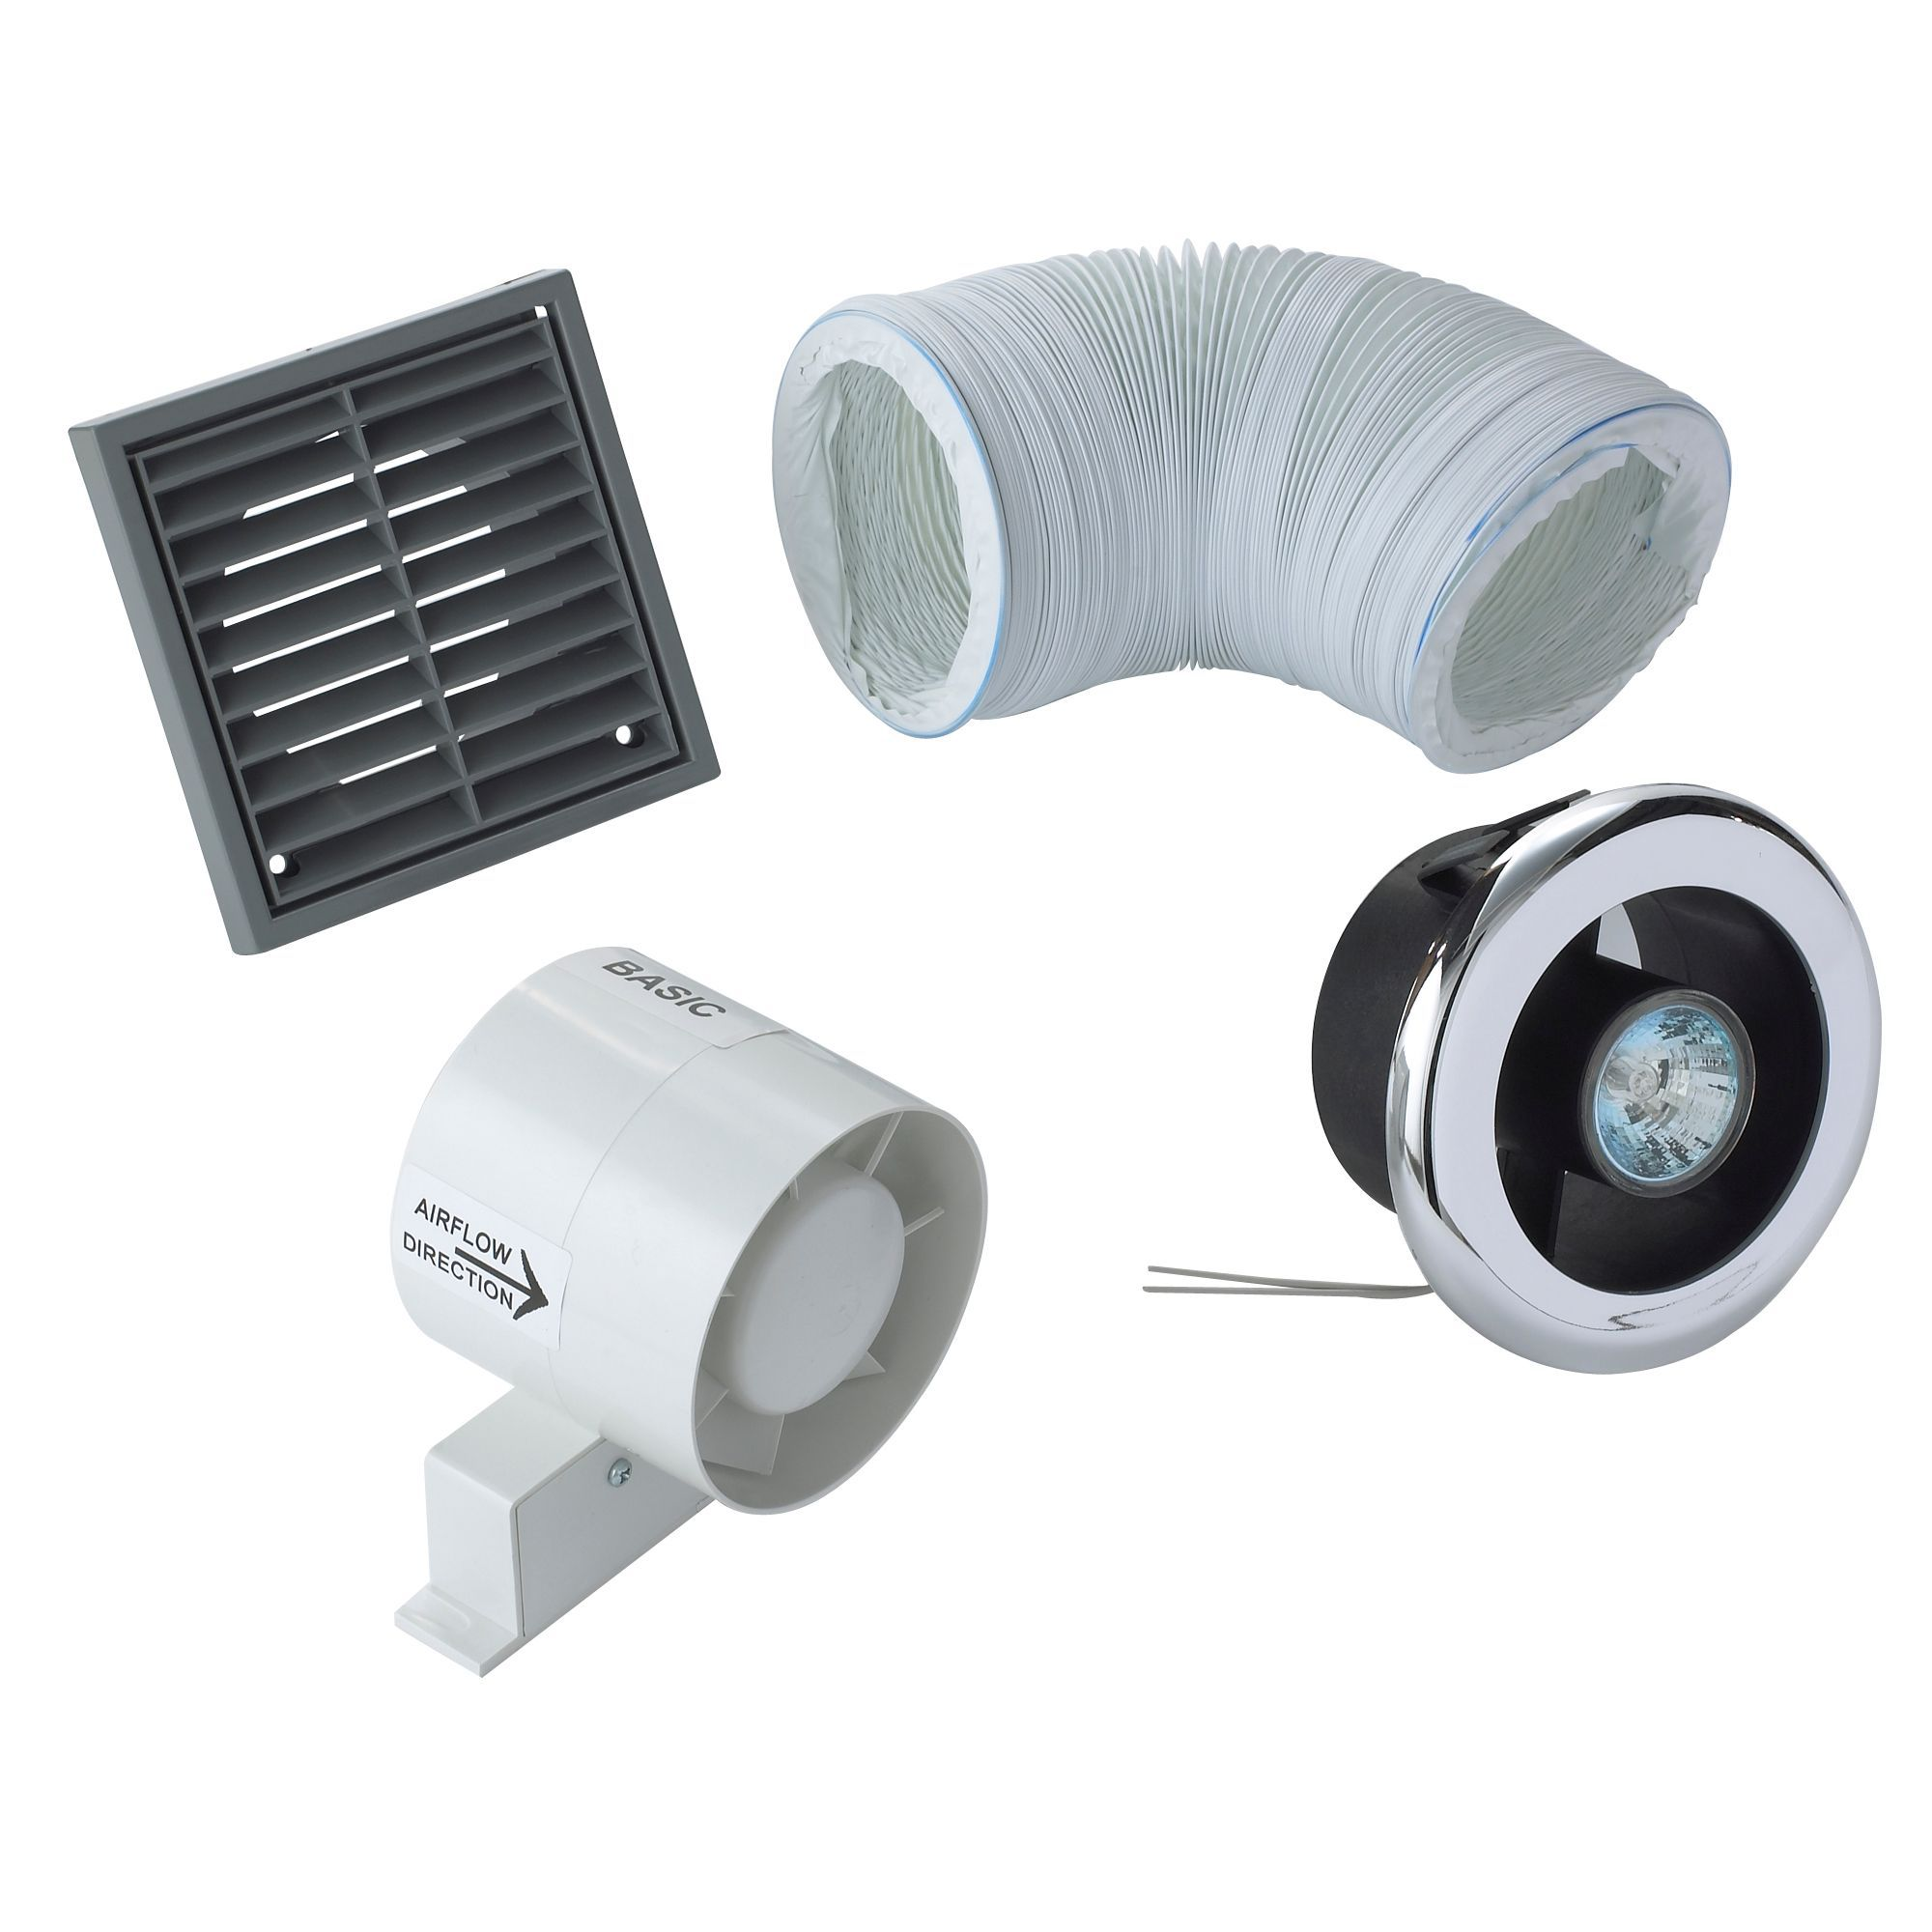 Manrose vdisl100s shower light bathroom extractor fan kit d98mm manrose vdisl100s shower light bathroom extractor fan kit d98mm departments diy at bq aloadofball Image collections